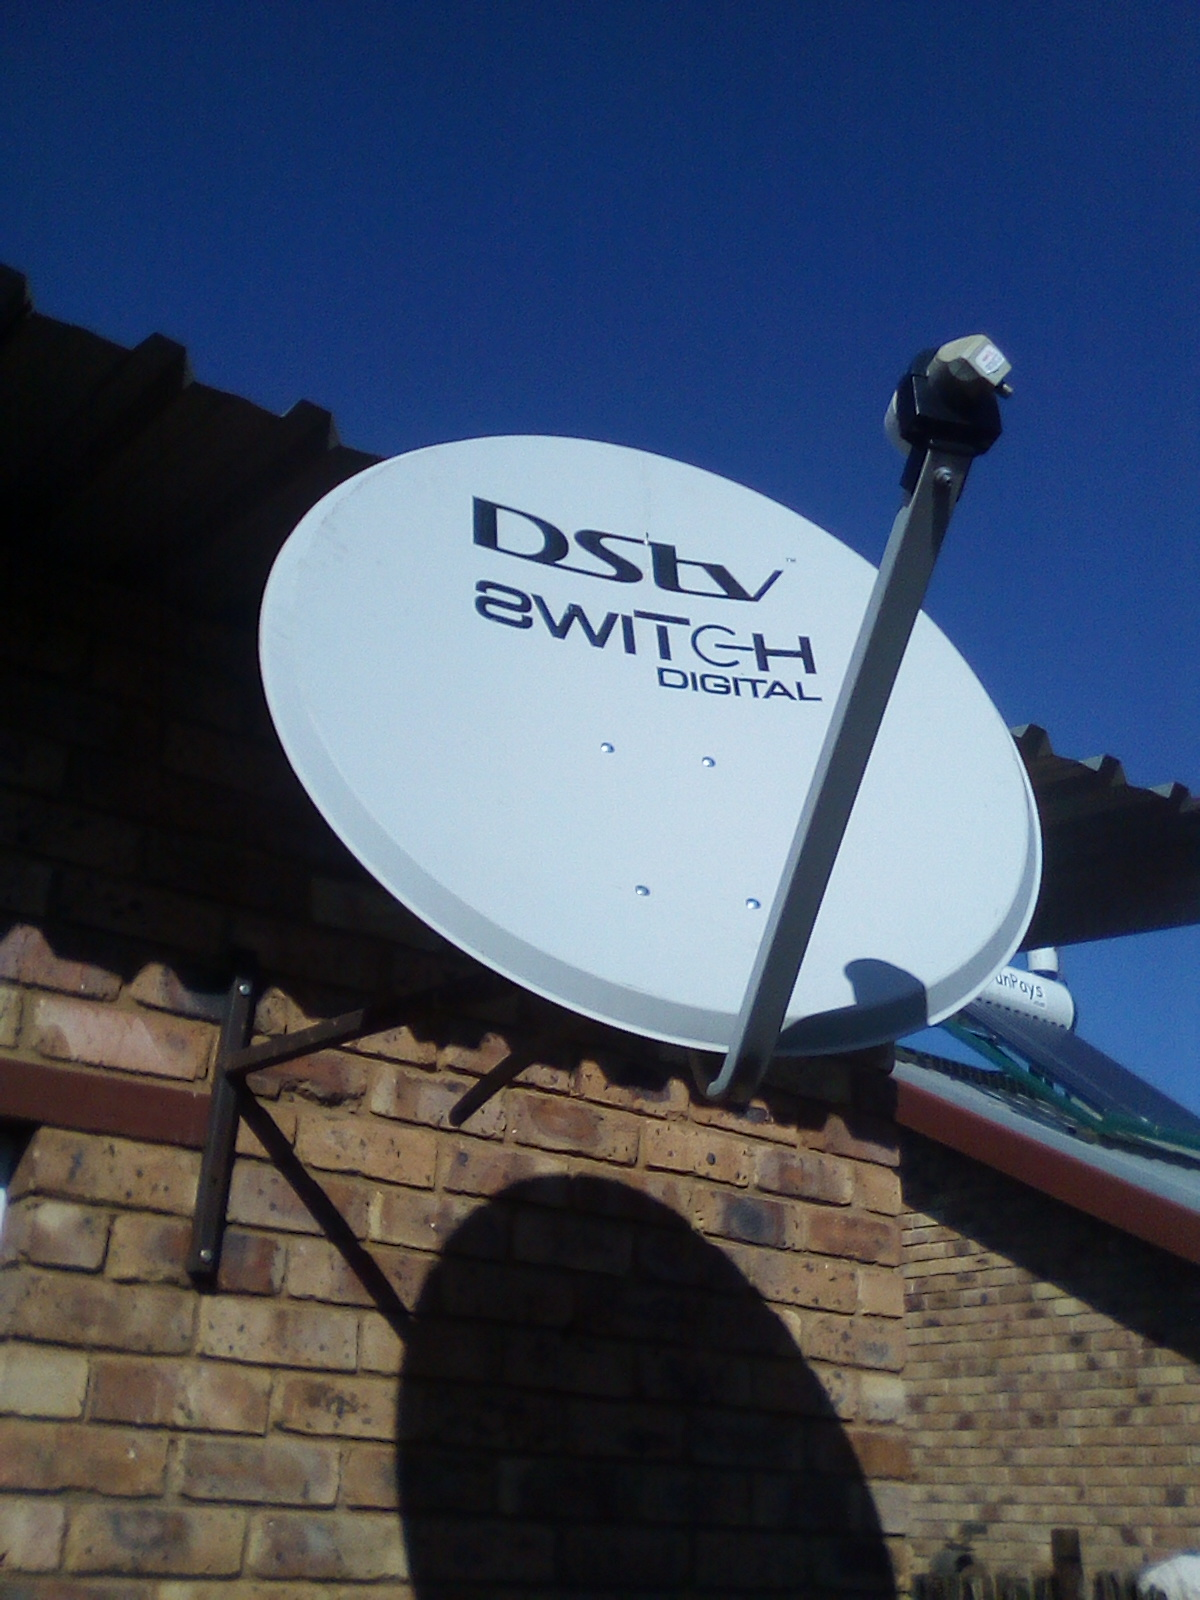 OVHD and Dish